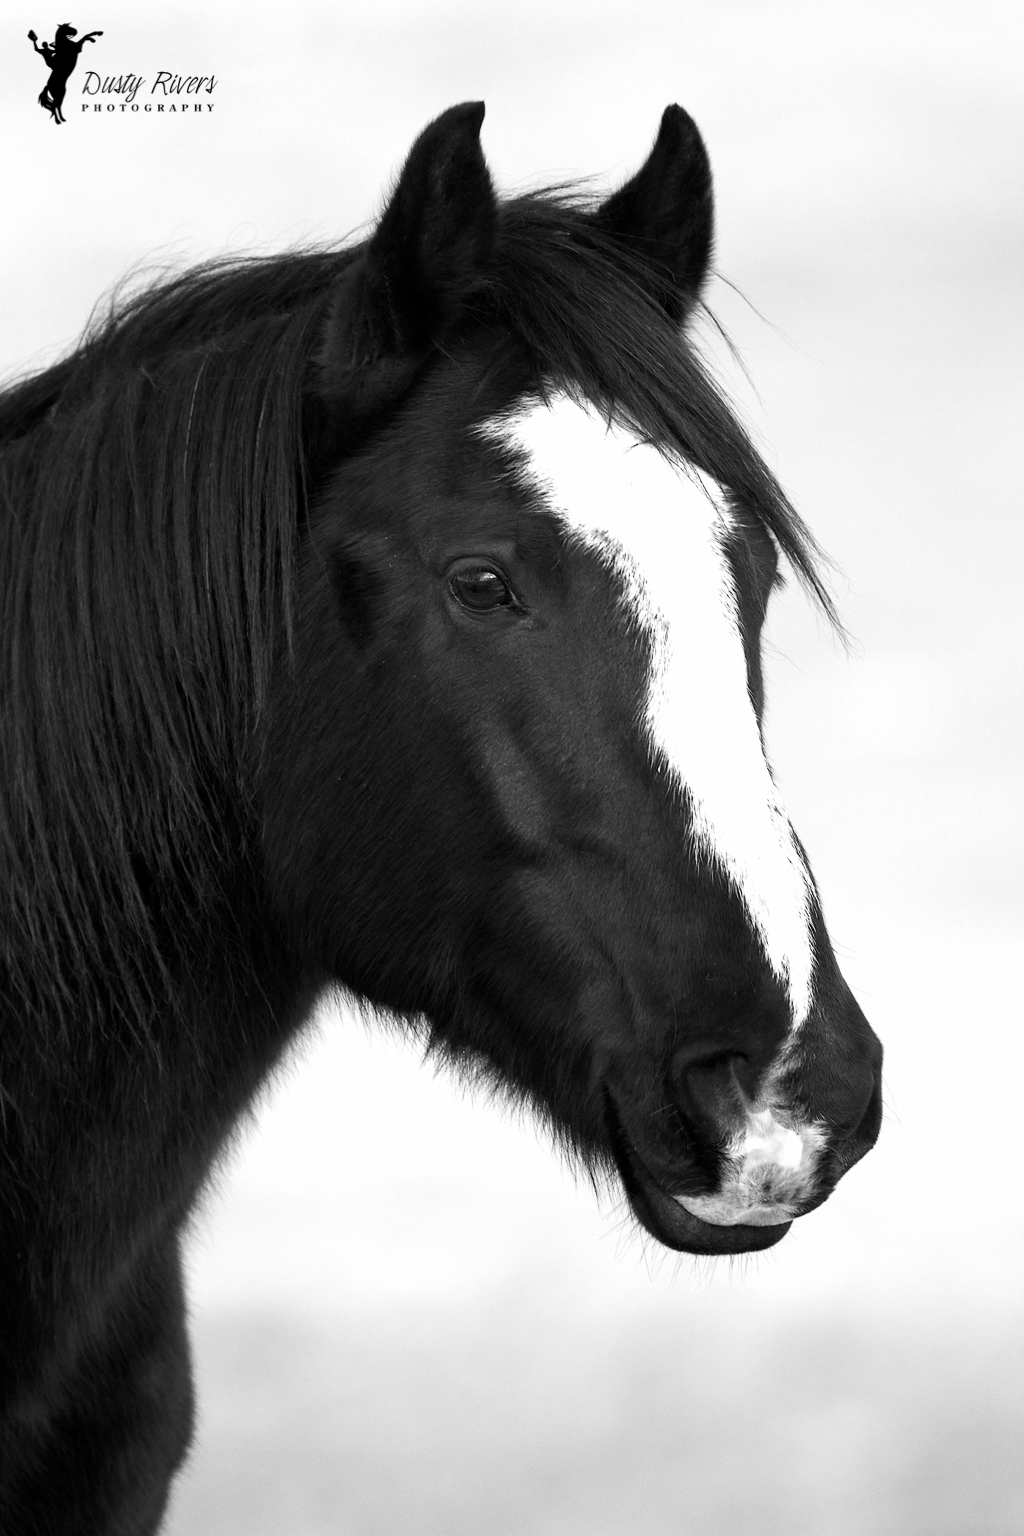 images of horses in black and white - photo #26